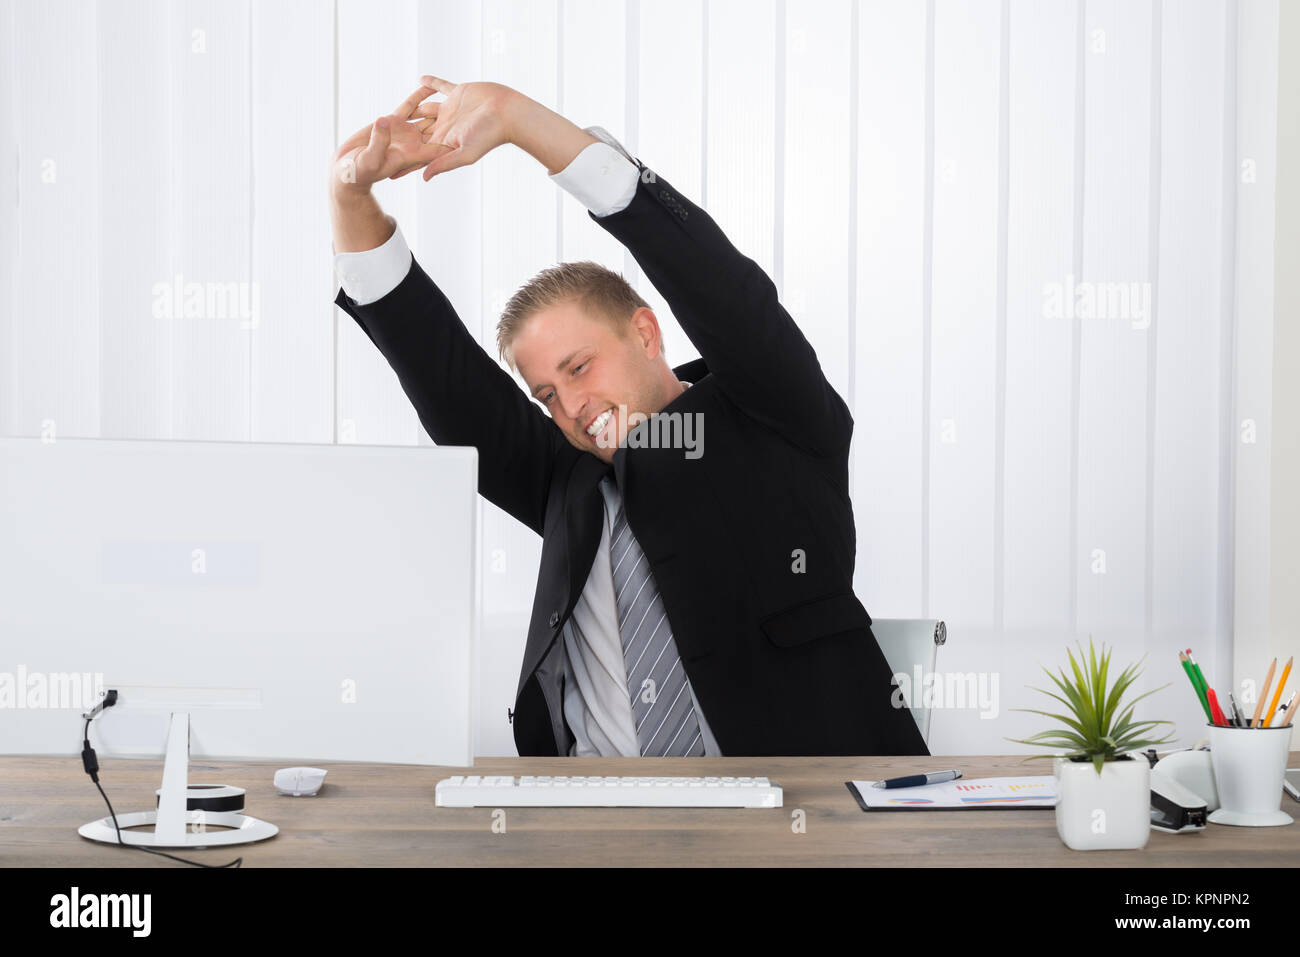 Businessman Stretching In Office - Stock Image